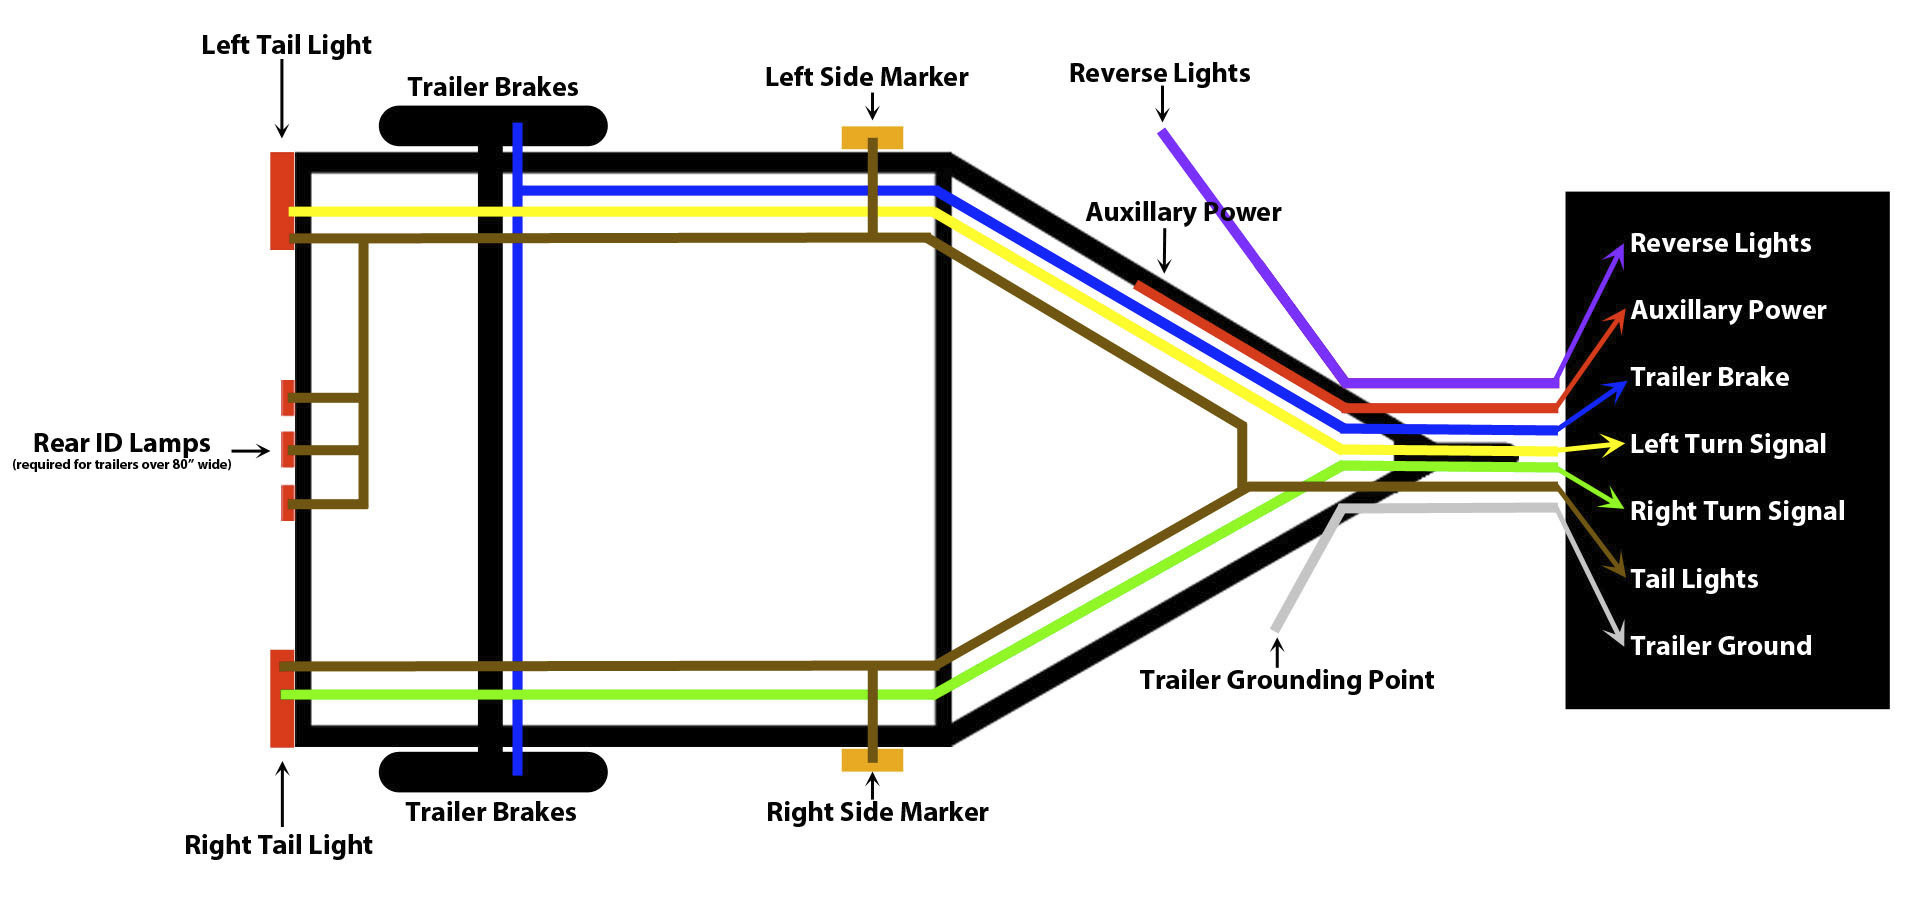 How To Wire Trailer Lights - Trailer Wiring Guide & Videos - Trailer Light Wiring Diagram 4 Pin